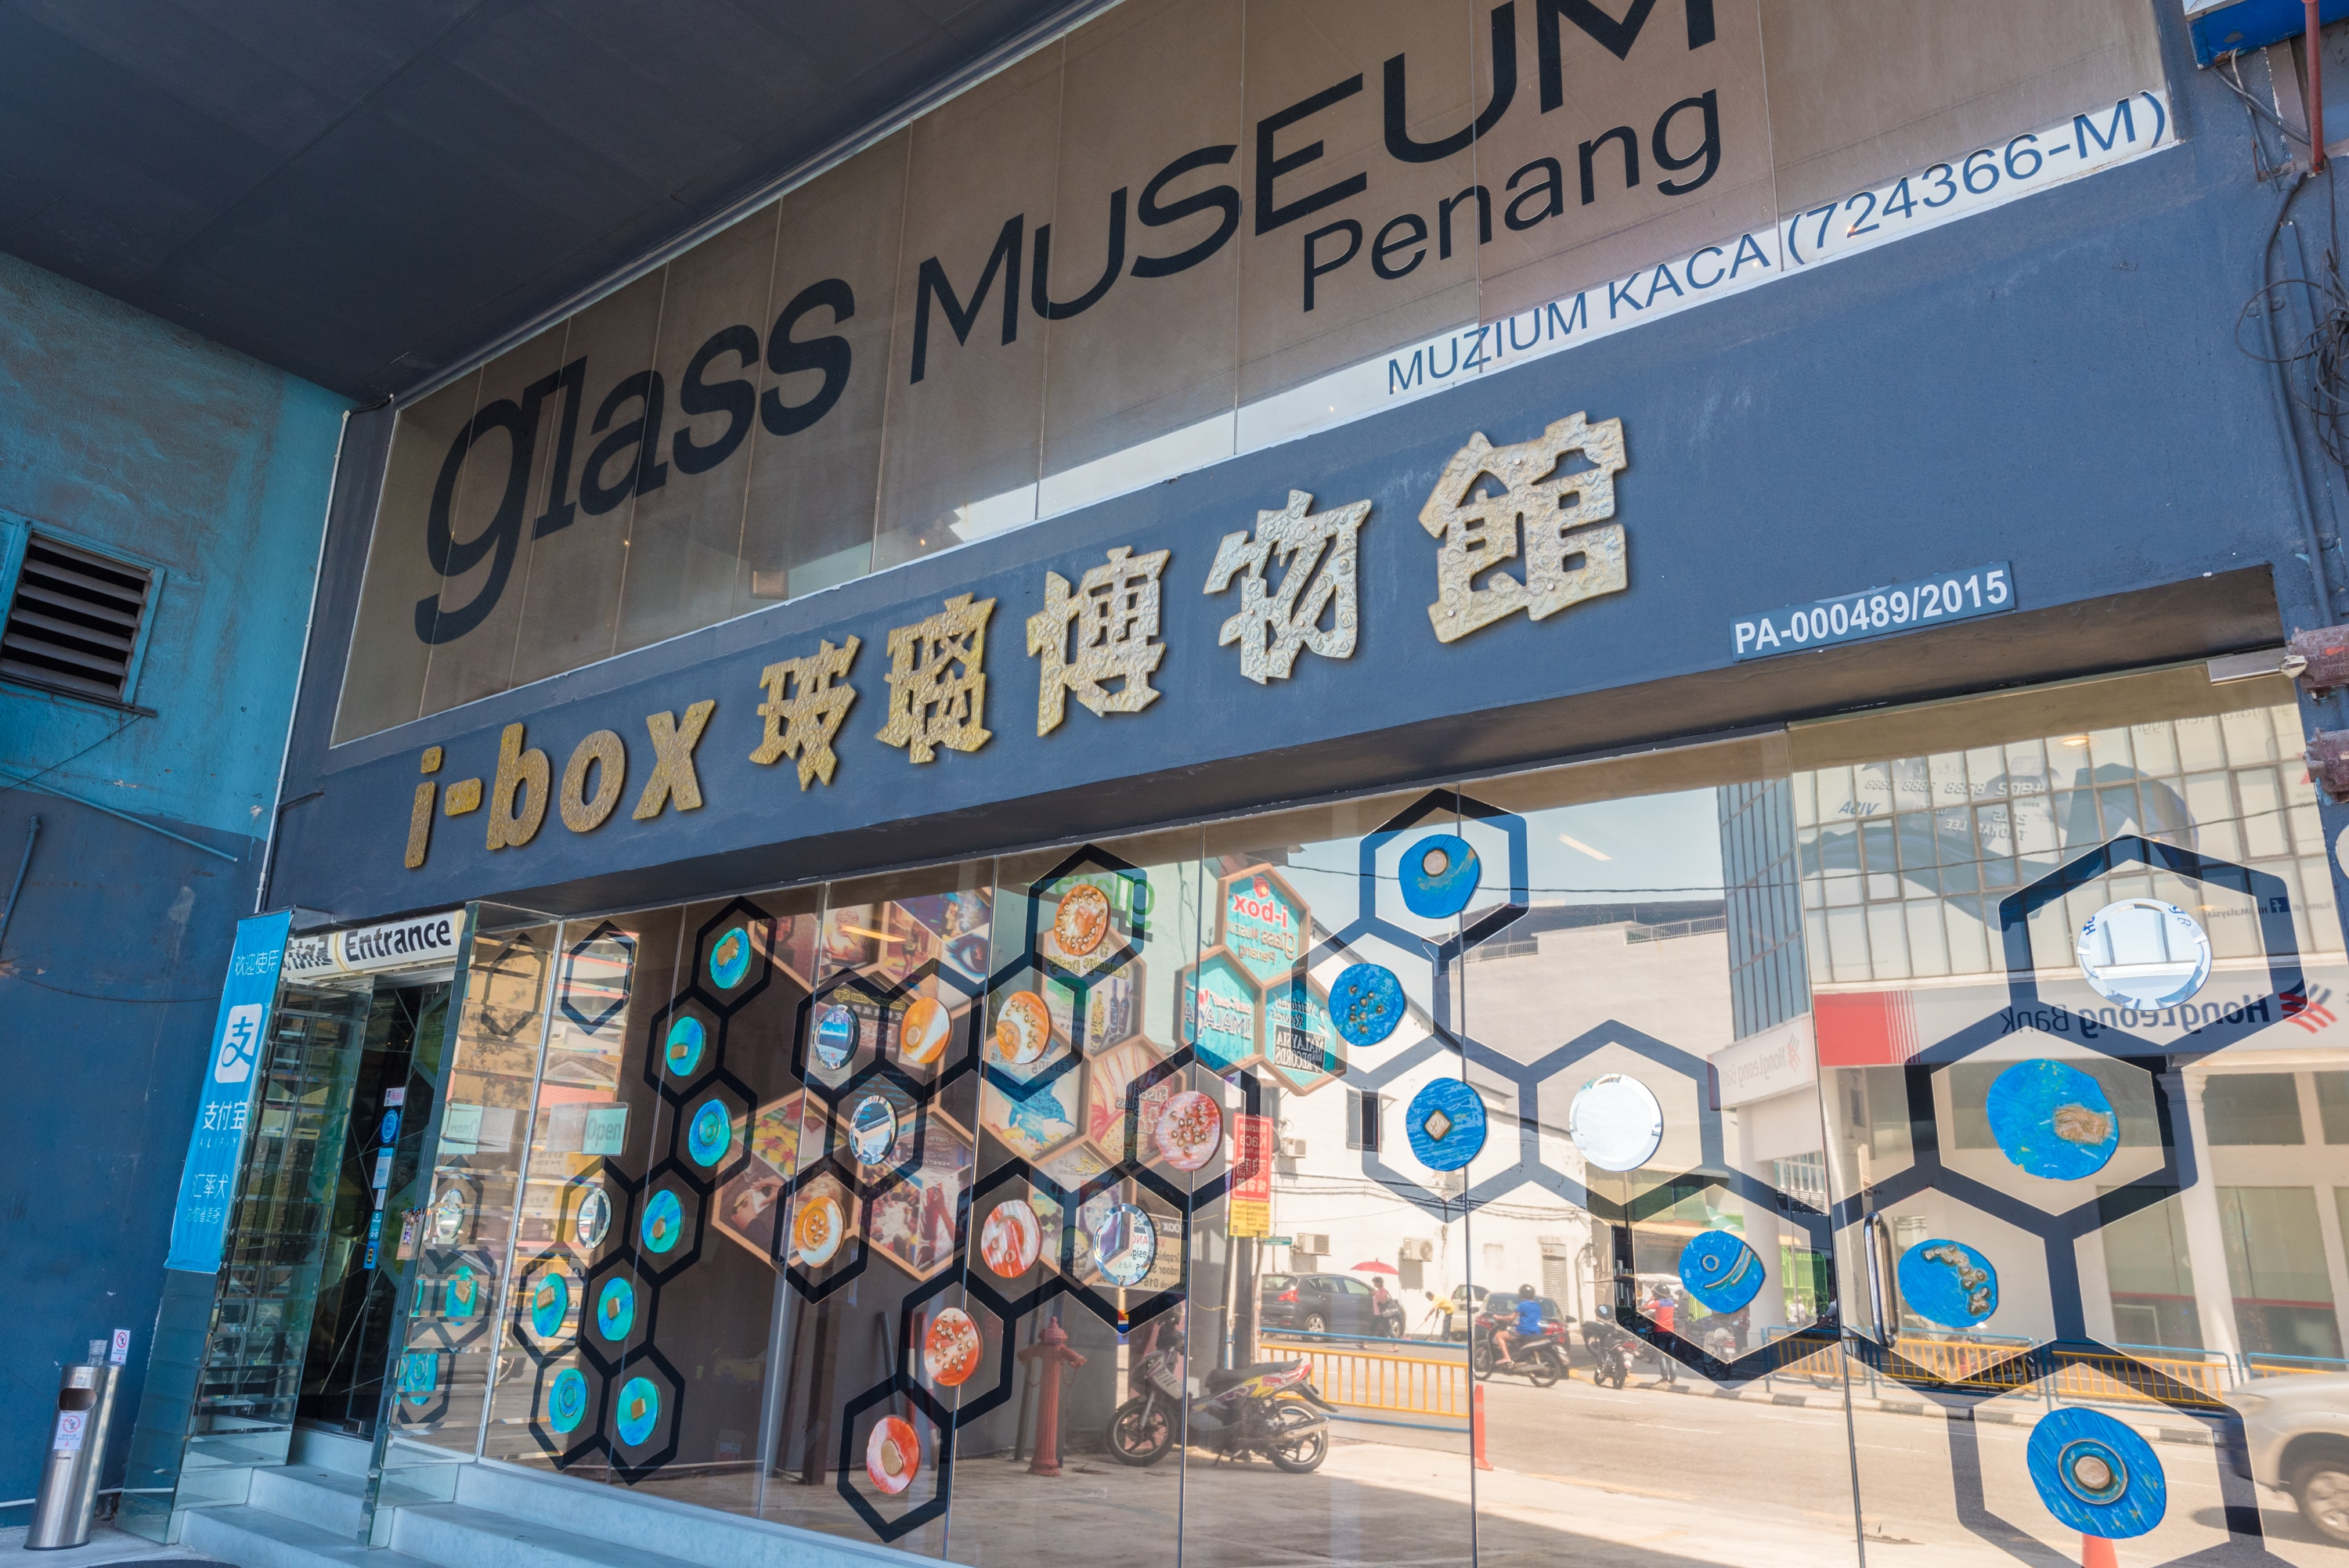 Ibox Museum of Glass Penang Ticket